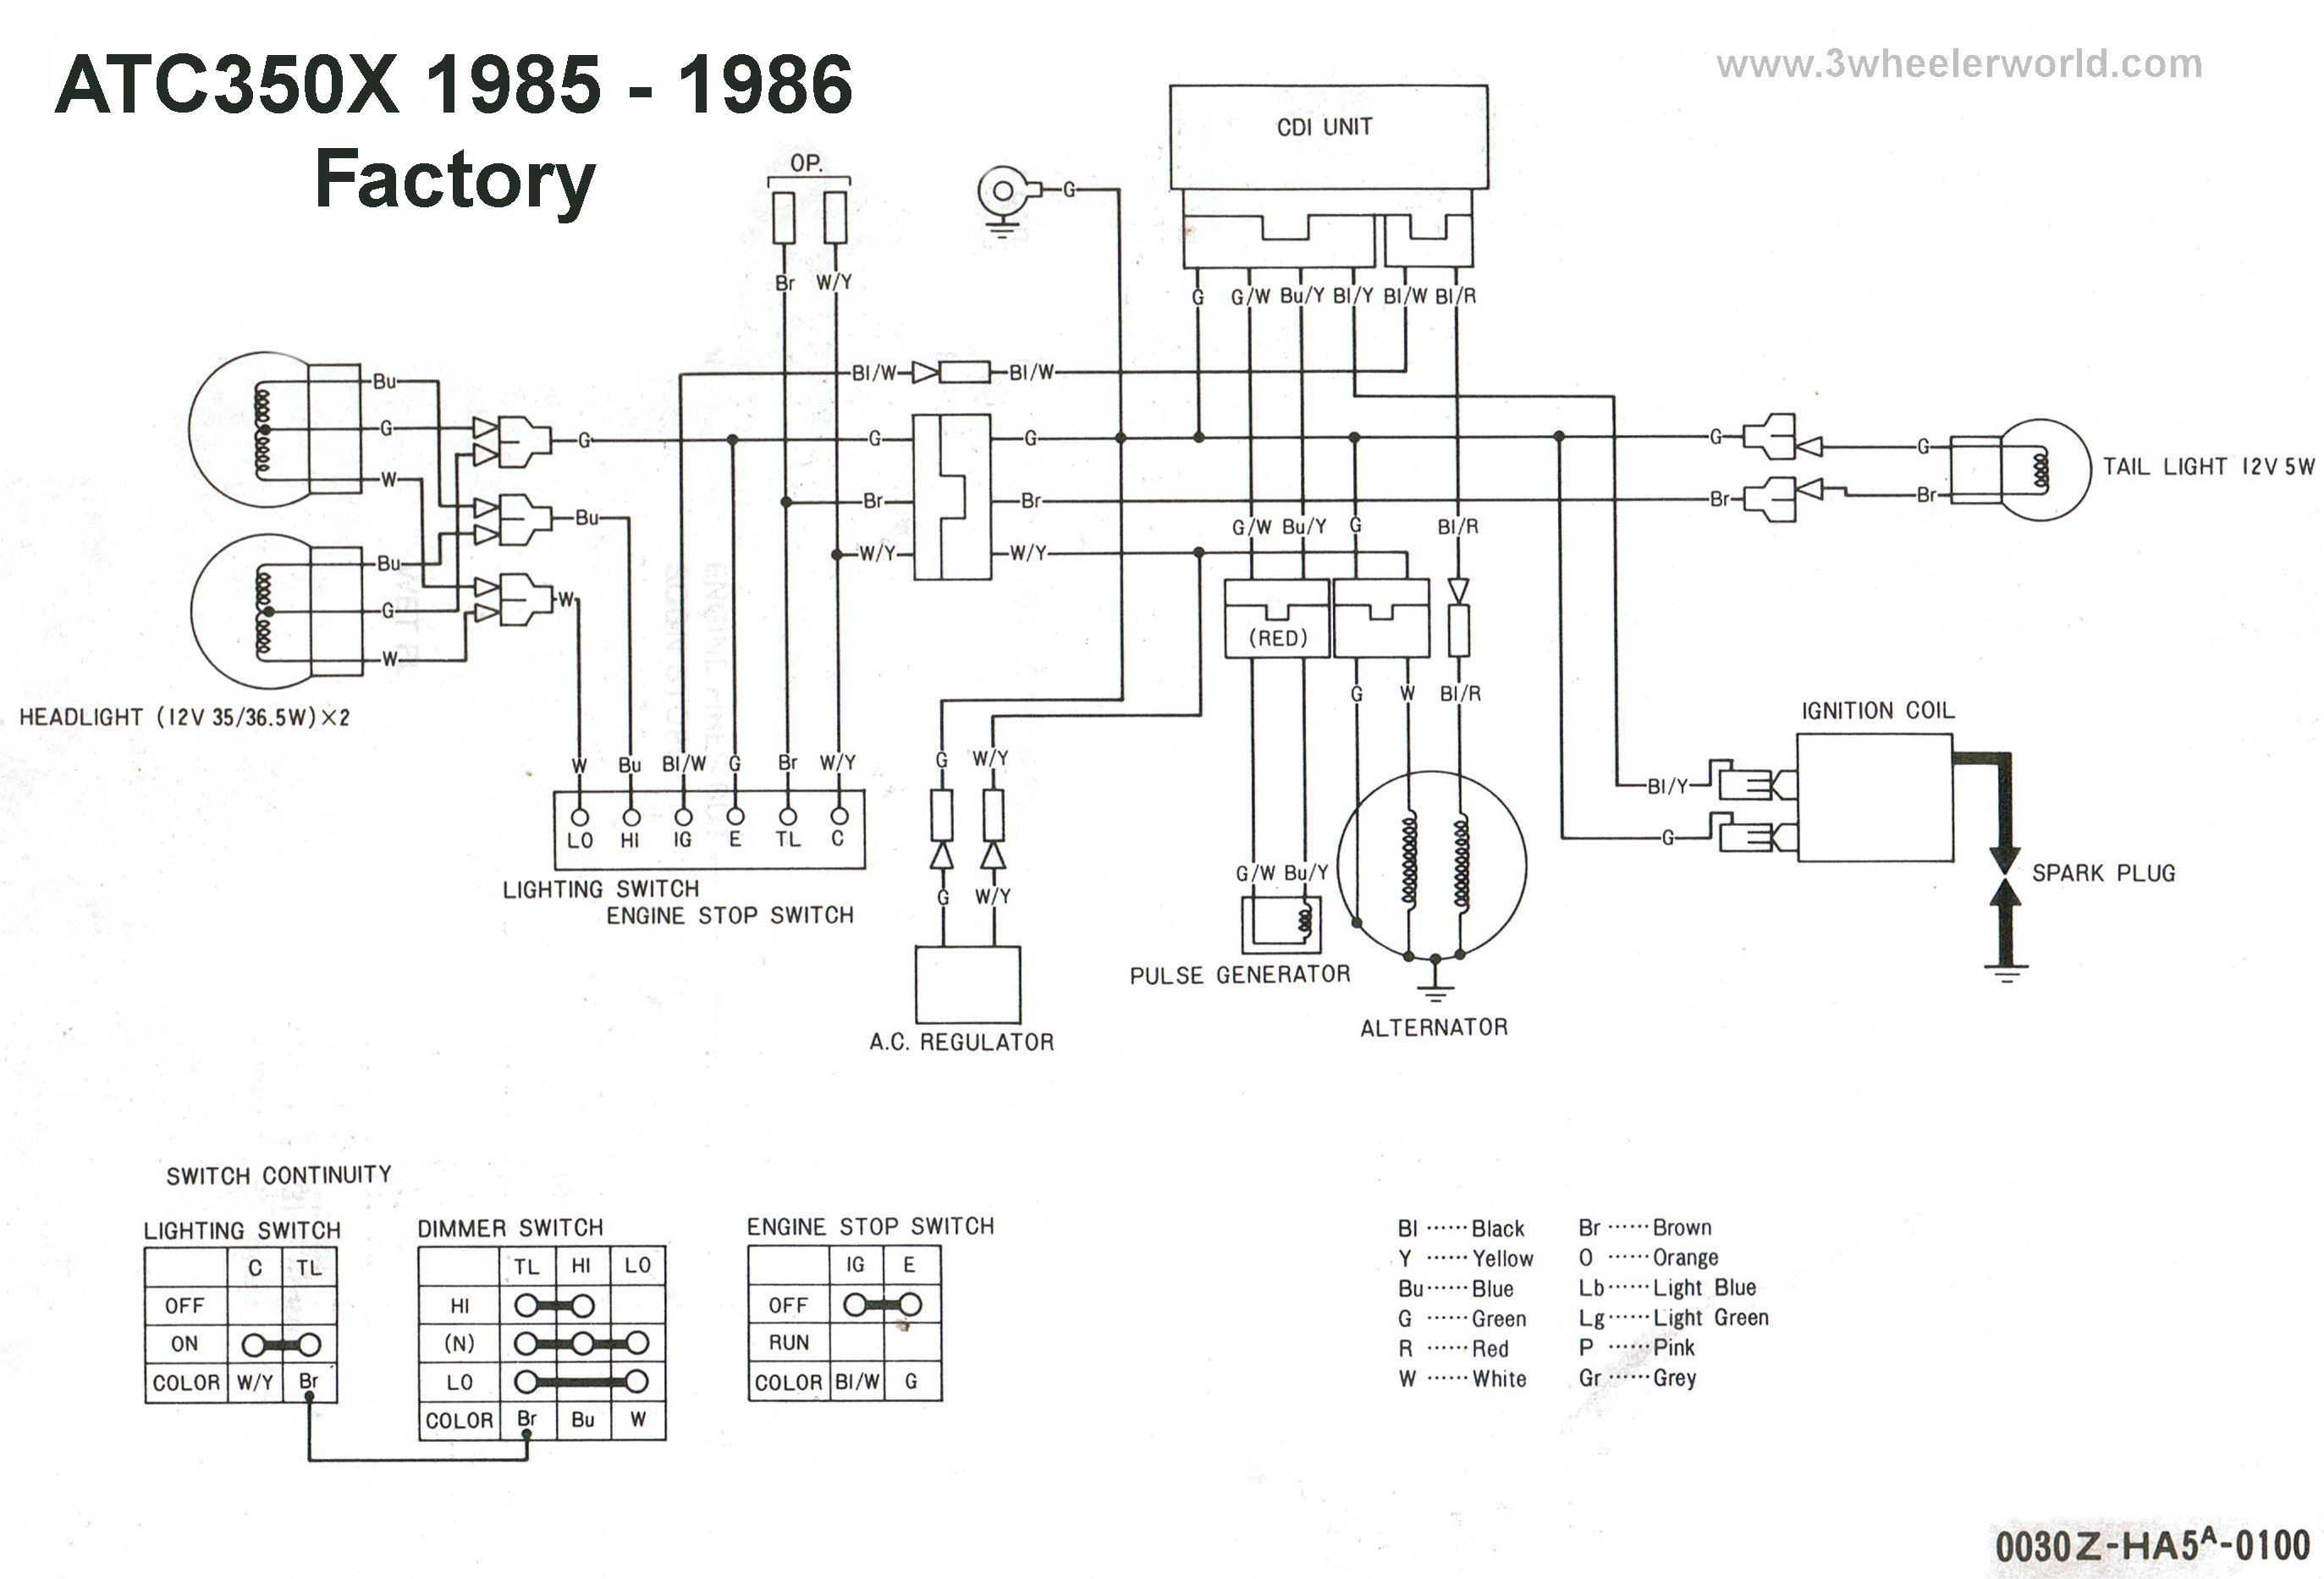 ATC350Xx85Thru86 3 wheeler world tech help honda wiring diagrams 1995 honda fourtrax 300 wiring diagram at crackthecode.co